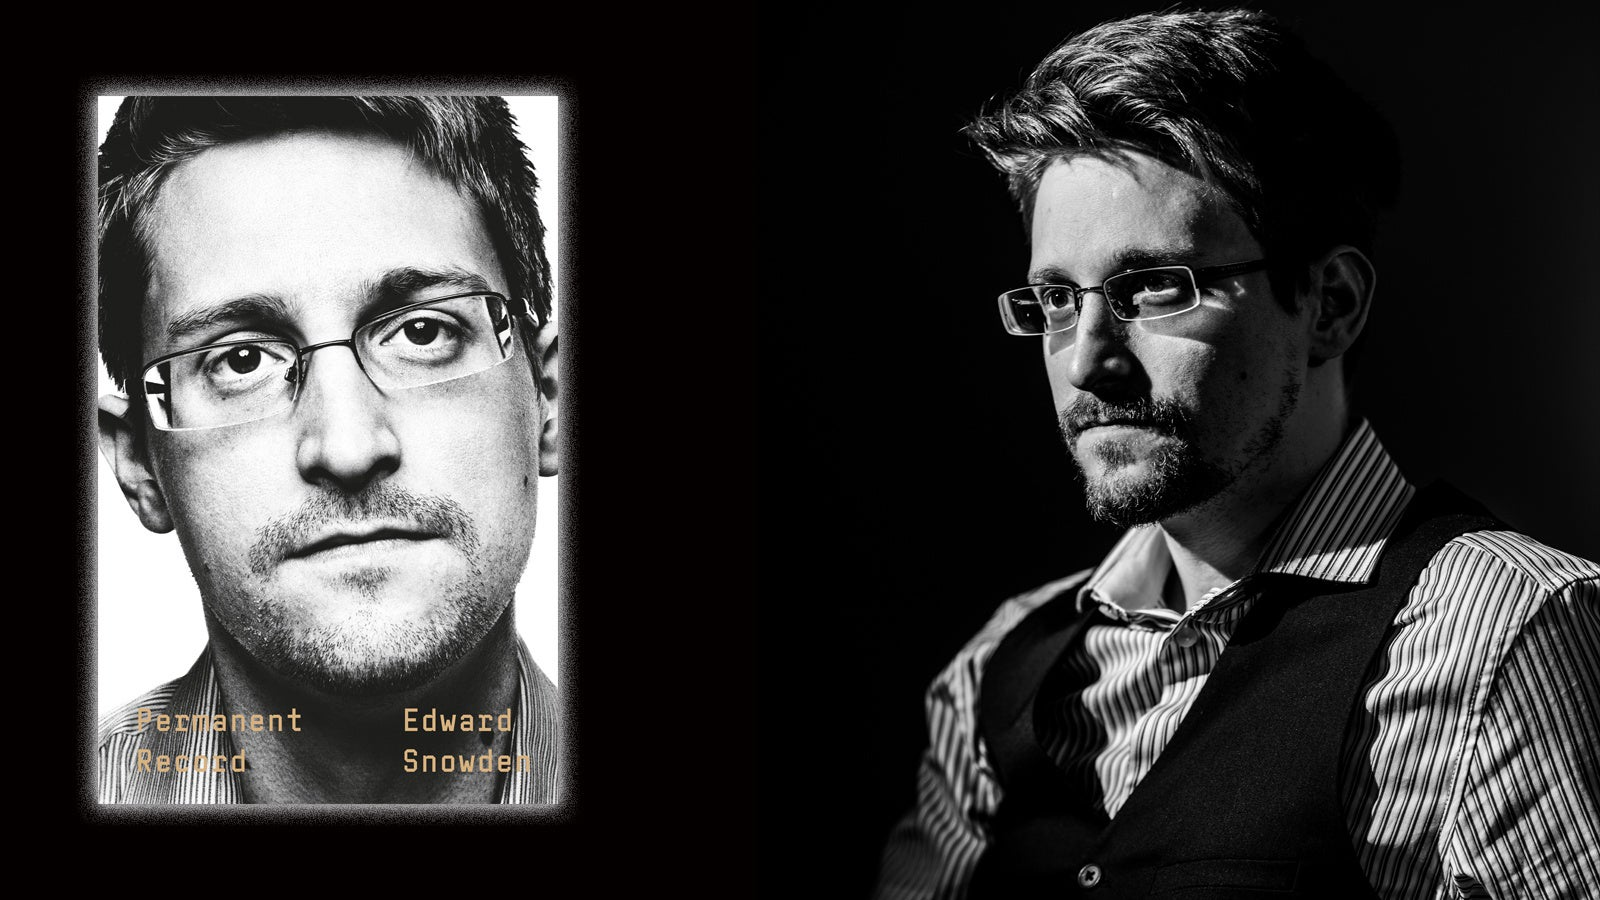 Image of Permanent Record book cover, next to image of Edward Snowden